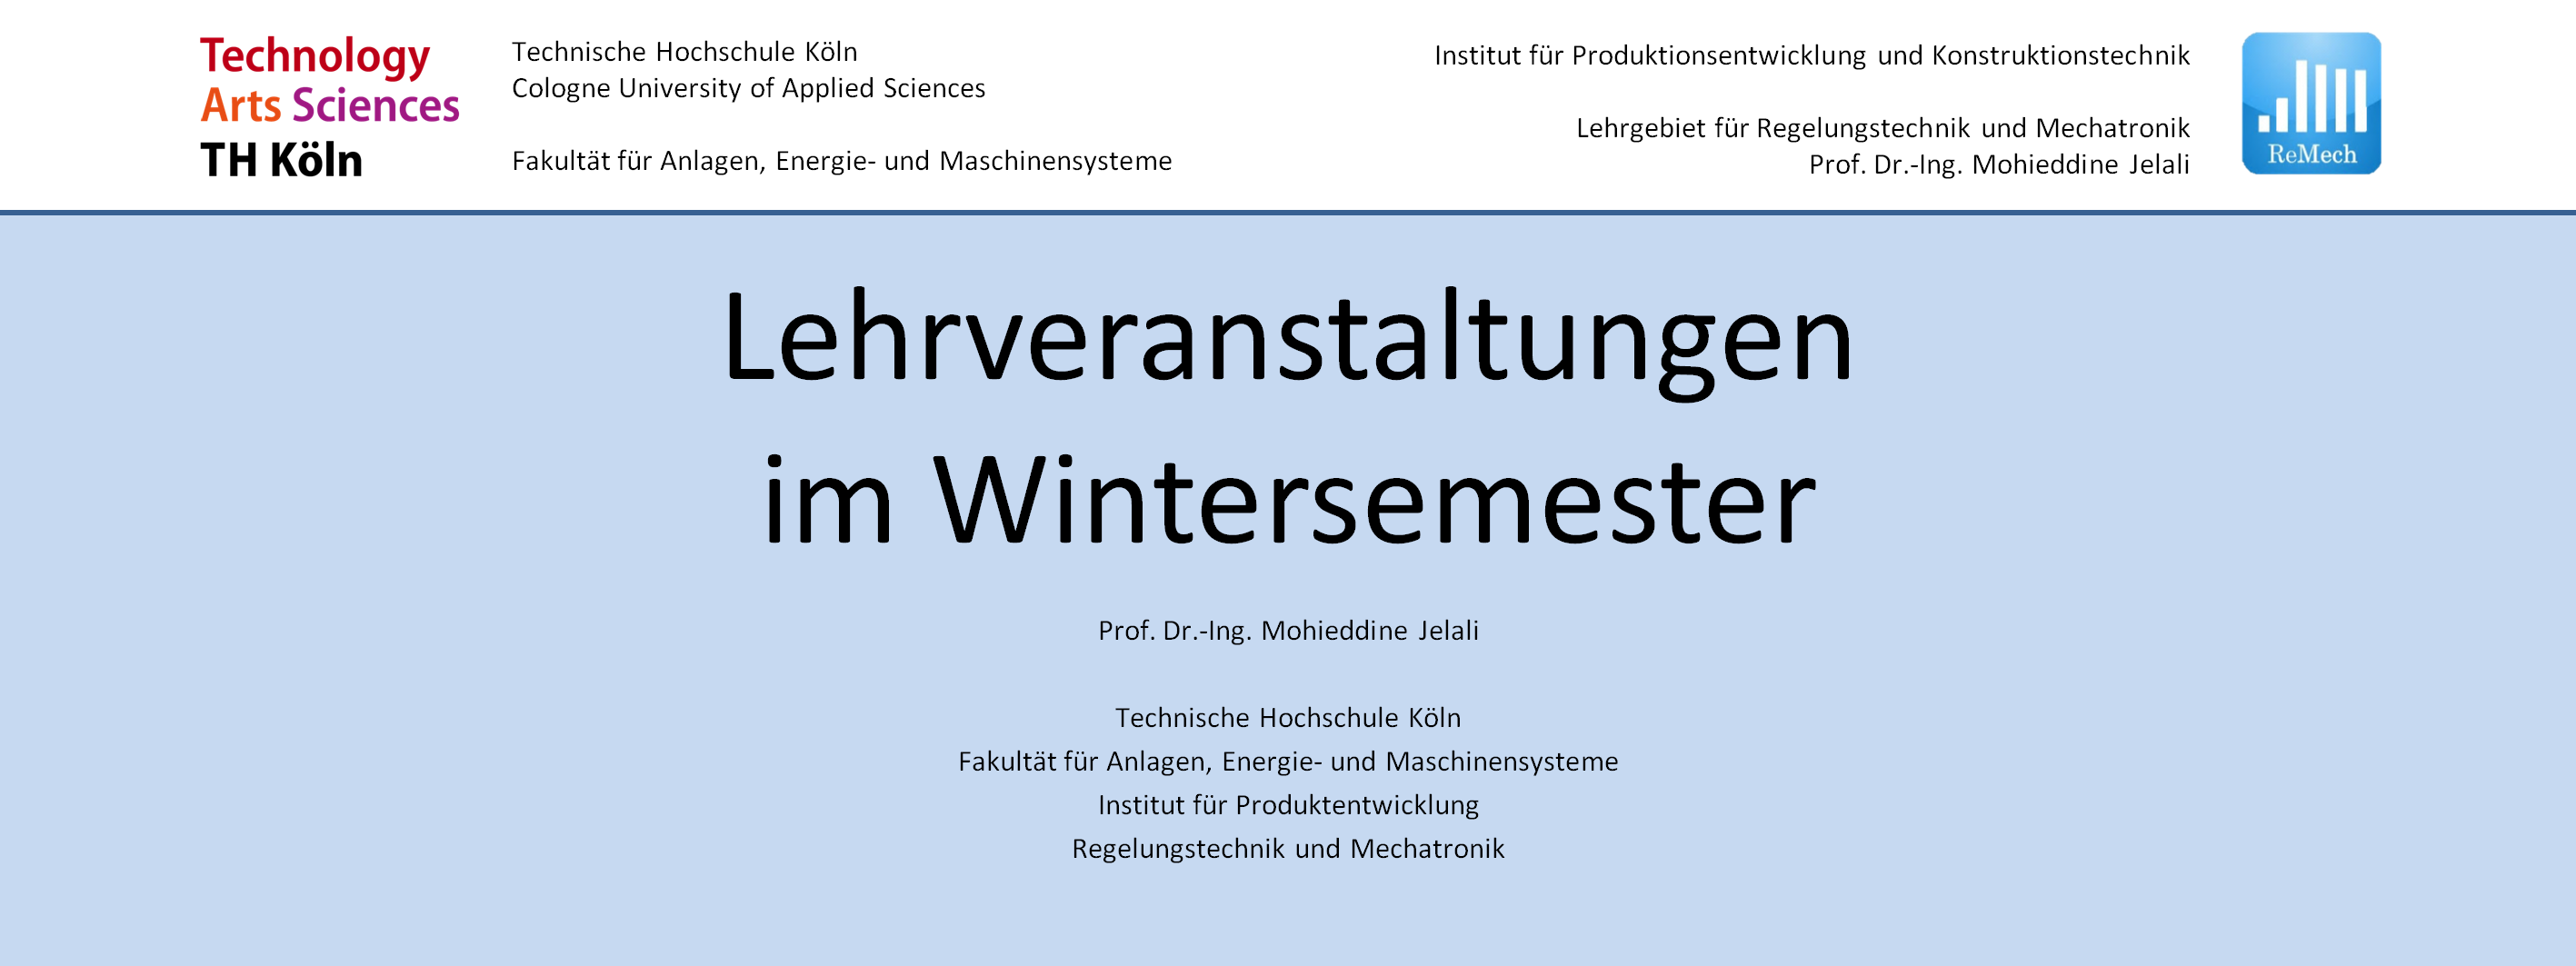 Courses in winter semester